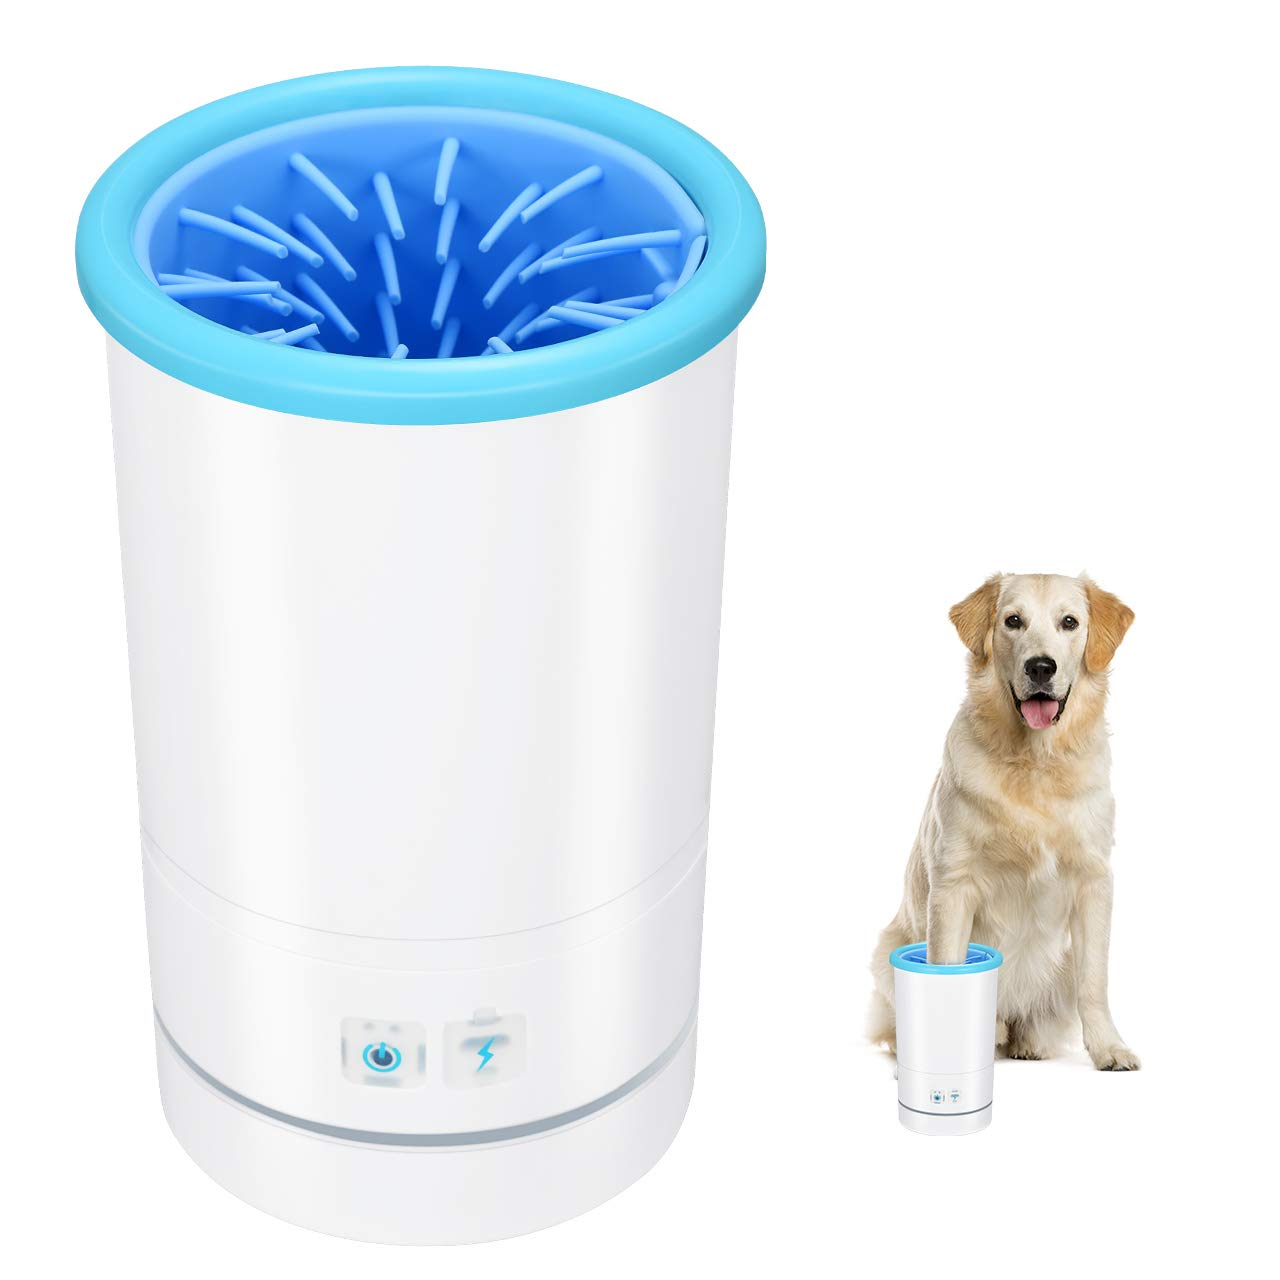 OMORC Pet Automatic Paw Cleaner, Portable Paw Washer with Soft and Removable Silicone Brush, Colorful Light, USB Rechargeable, Paw Cleaning Cup Both for Dog and Cat